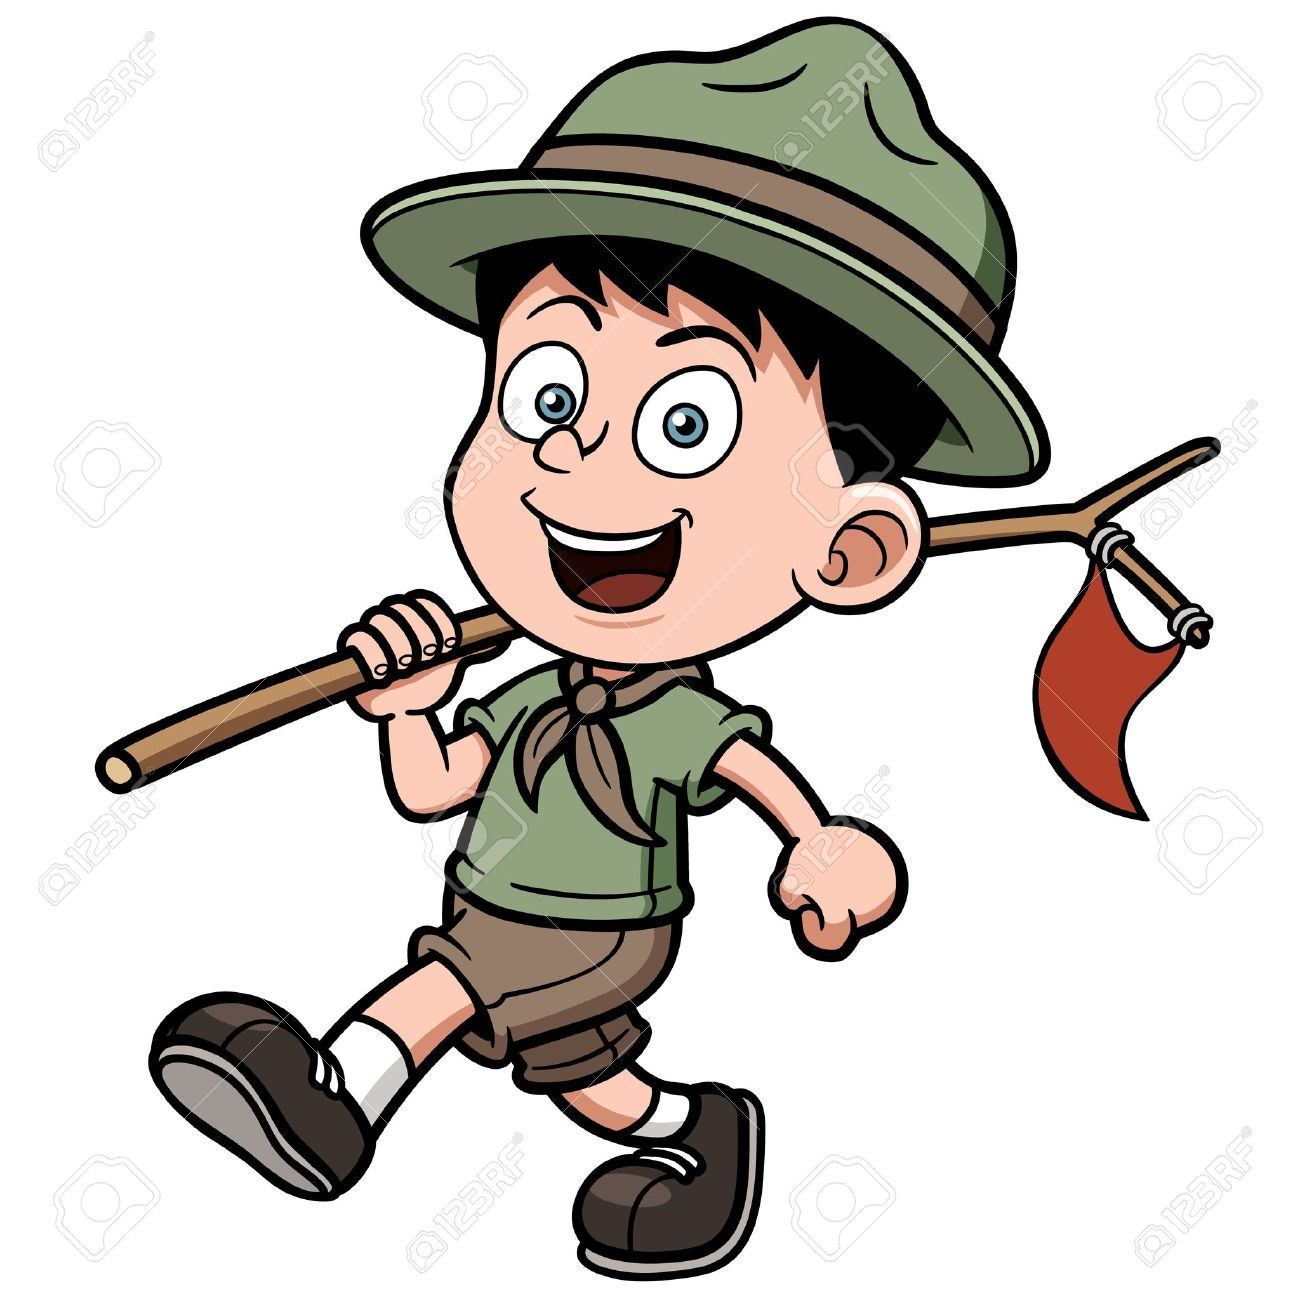 Boy scout clipart licensed.